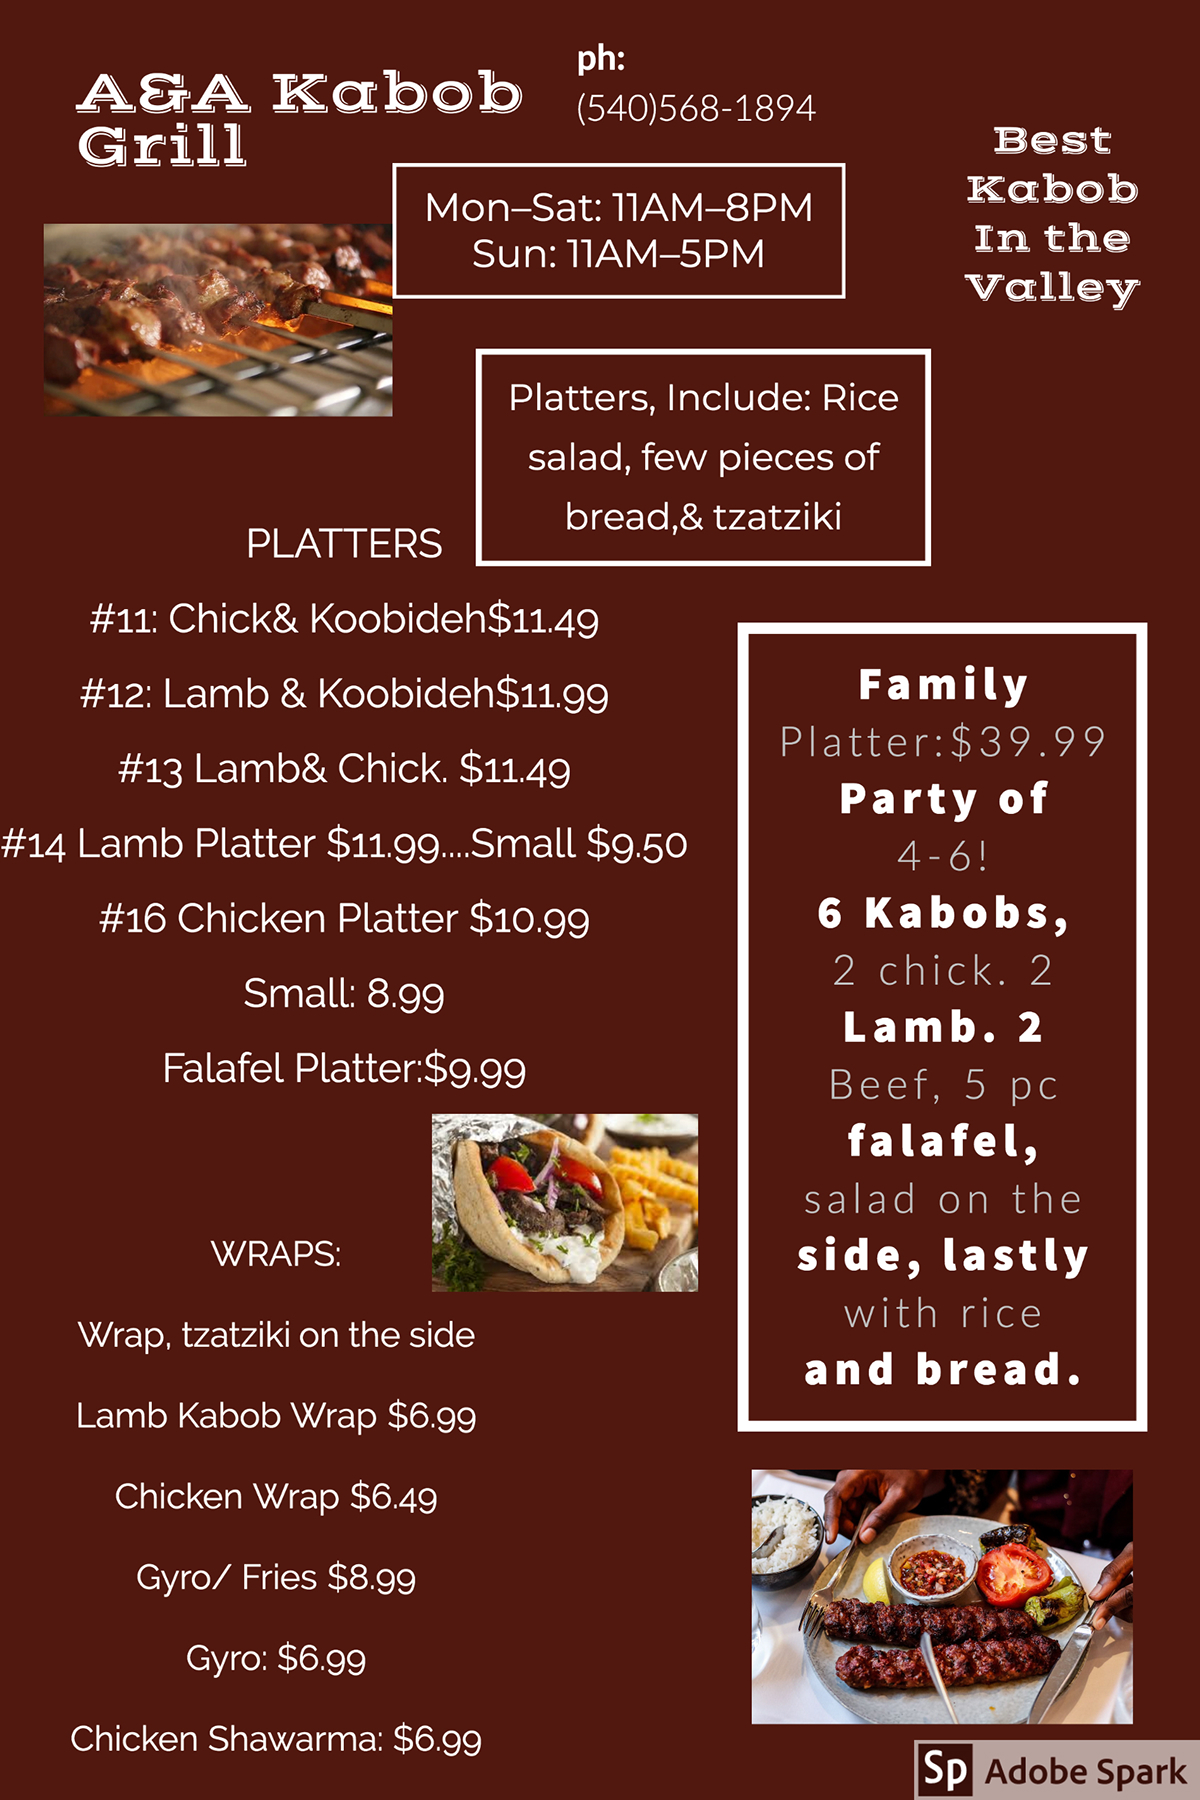 A&A Kabob Grill A&A Kabob Grill Best Kabob In the Valley Family Platter:$39.99 Party of 4-6! 6 Kabobs, 2 chick. 2 Lamb. 2 Beef, 5 pc falafel, salad on the side, lastly with rice and bread. Mon–Sat: 11AM–8PM Sun: 11AM–5PM PLATTERS #11: Chick& Koobideh$11.49 #12: Lamb & Koobideh$11.99 #13 Lamb& Chick. $11.49 #14 Lamb Platter $11.99....Small $9.50 #16 Chicken Platter $10.99 Small: 8.99 Falafel Platter:$9.99 ph: (540)568-1894 Platters, Include: Rice salad, few pieces of bread,& tzatziki WRAPS: Wrap, tzatziki on the side Lamb Kabob Wrap $6.99 Chicken Wrap $6.49 Gyro/ Fries $8.99 Gyro: $6.99 Chicken Shawarma: $6.99